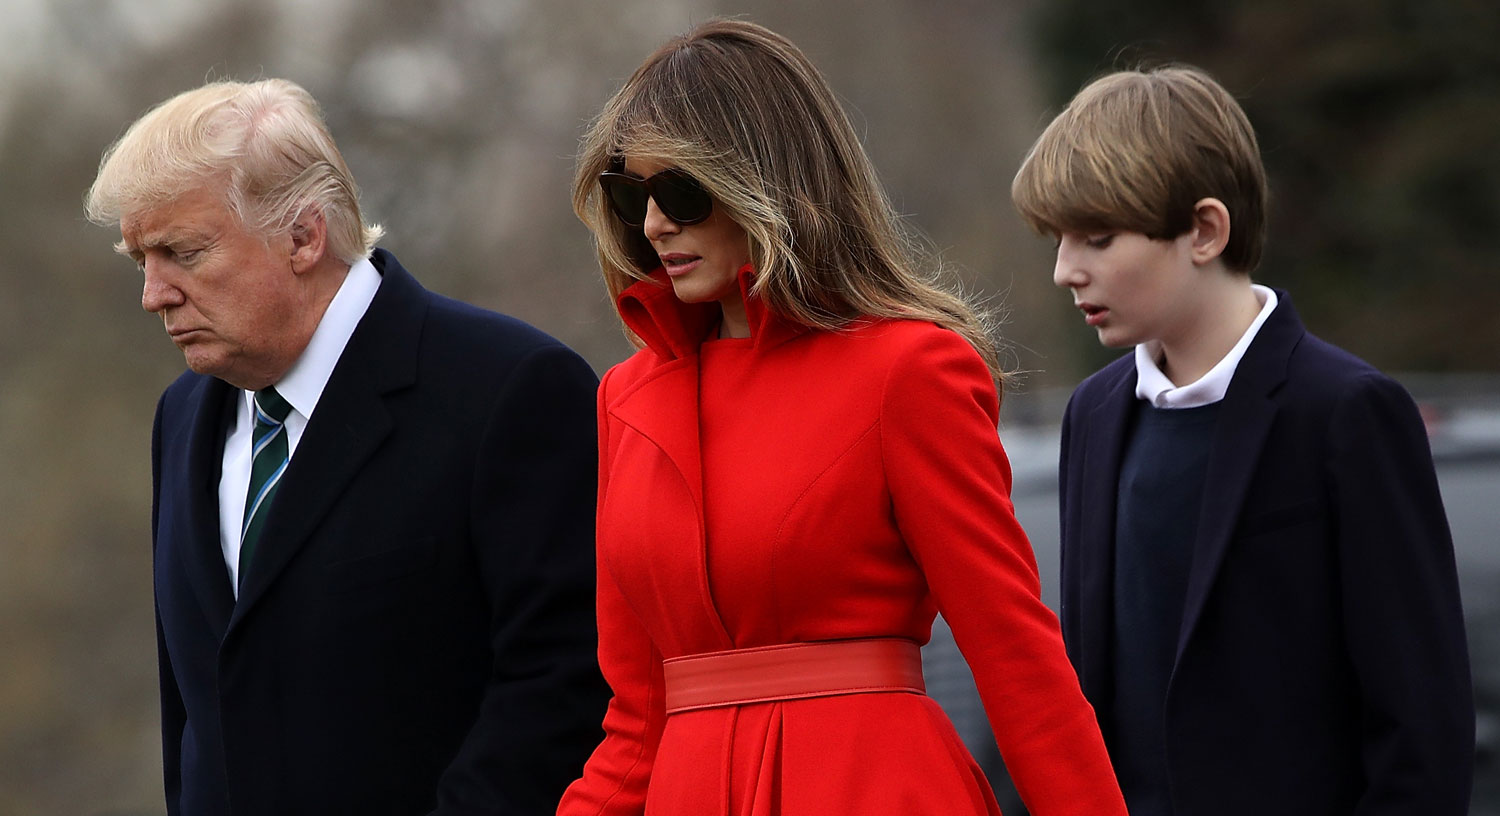 Barron Trump Autism Video: YouTube User Releases Statement After ...